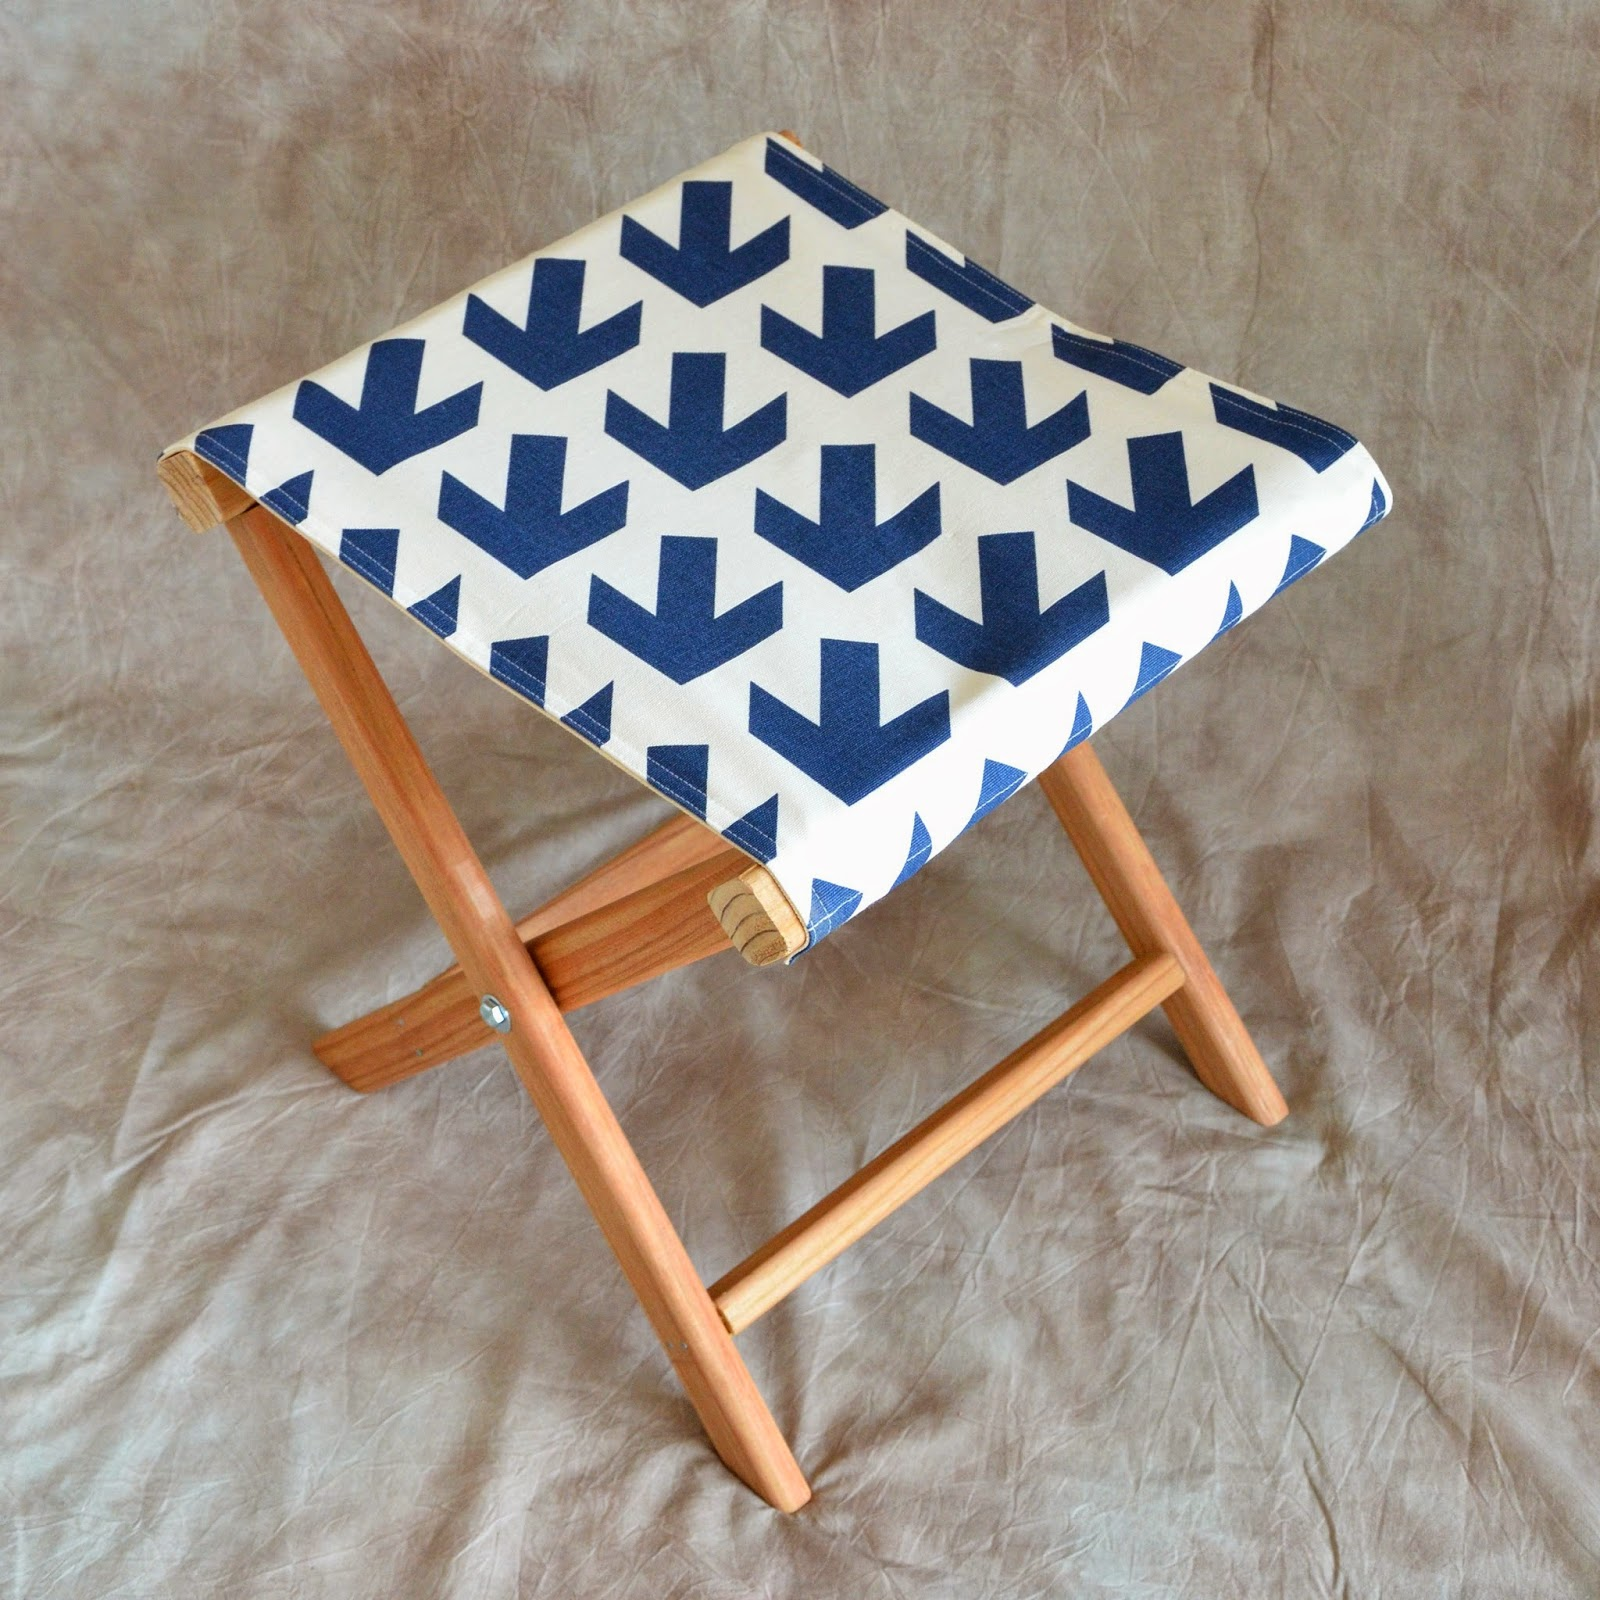 foldable chair plans cover rentals in virginia beach how to make a folding camp stool about orange